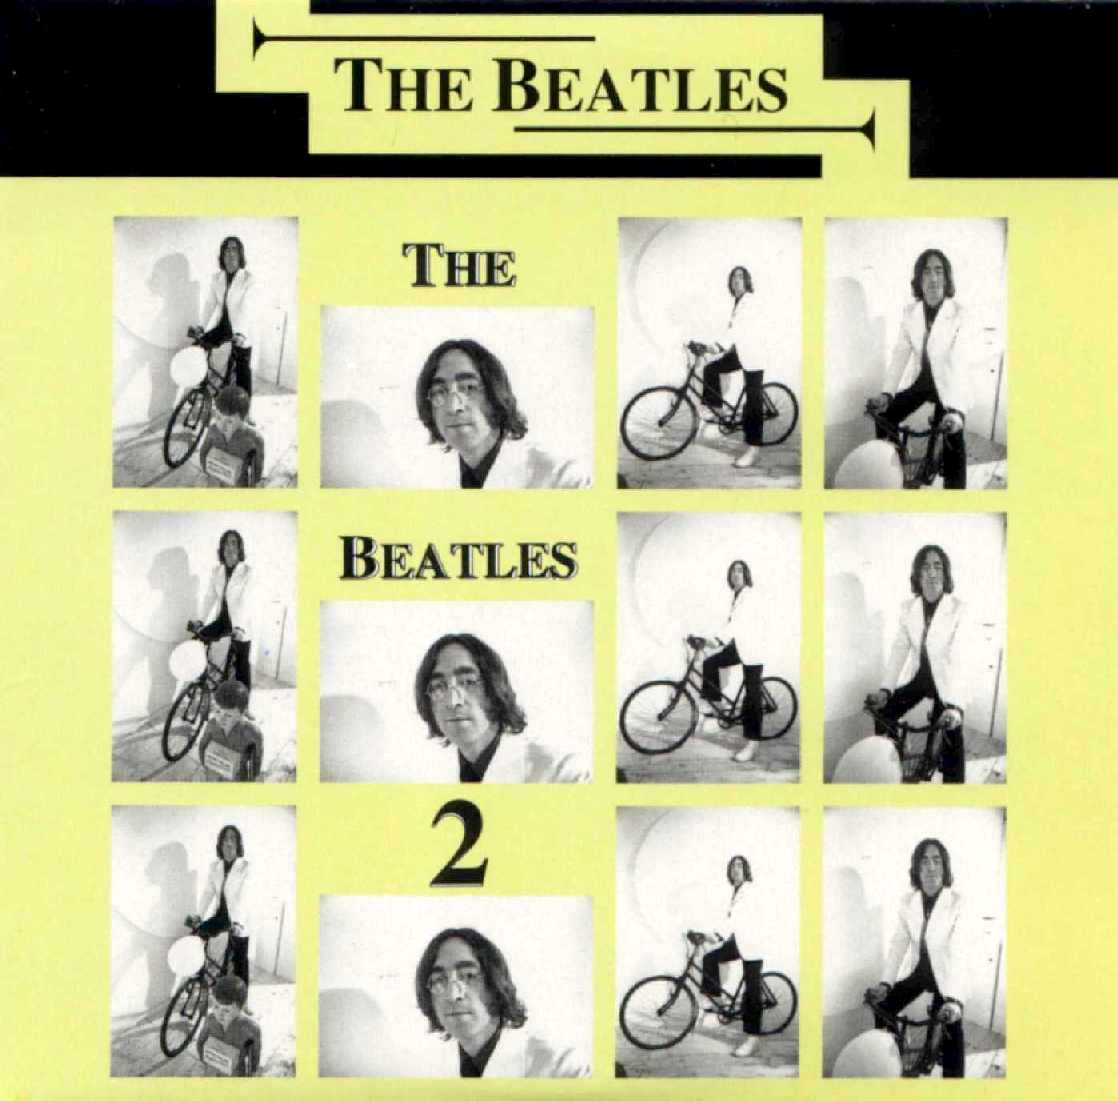 The Beatles - Another Phase - White Album Disc 2